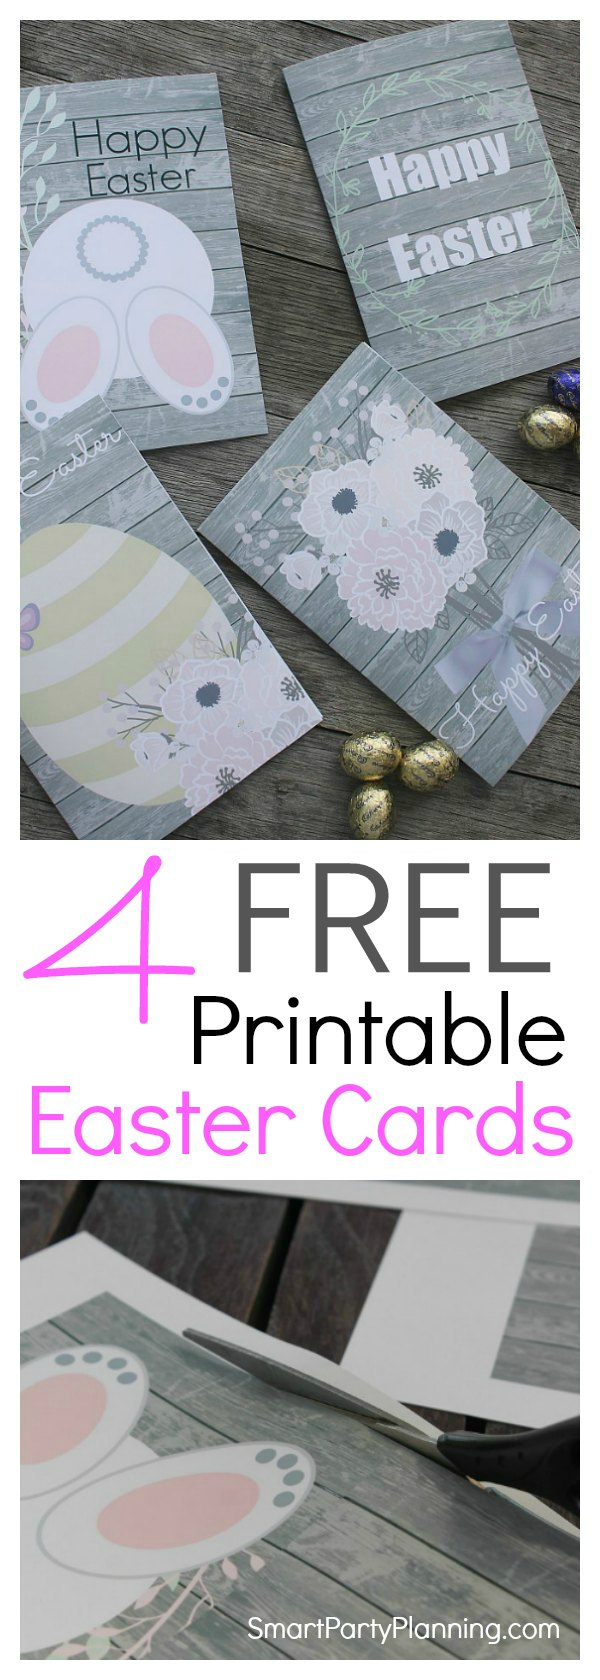 DIY printable Easter cards. Send a beautiful Easter card to someone you love this year and print it for free. With 4 super cute designs to choose from, the cards will be sure to delight. Simply print, cut fold and send. It couldn't be easier.